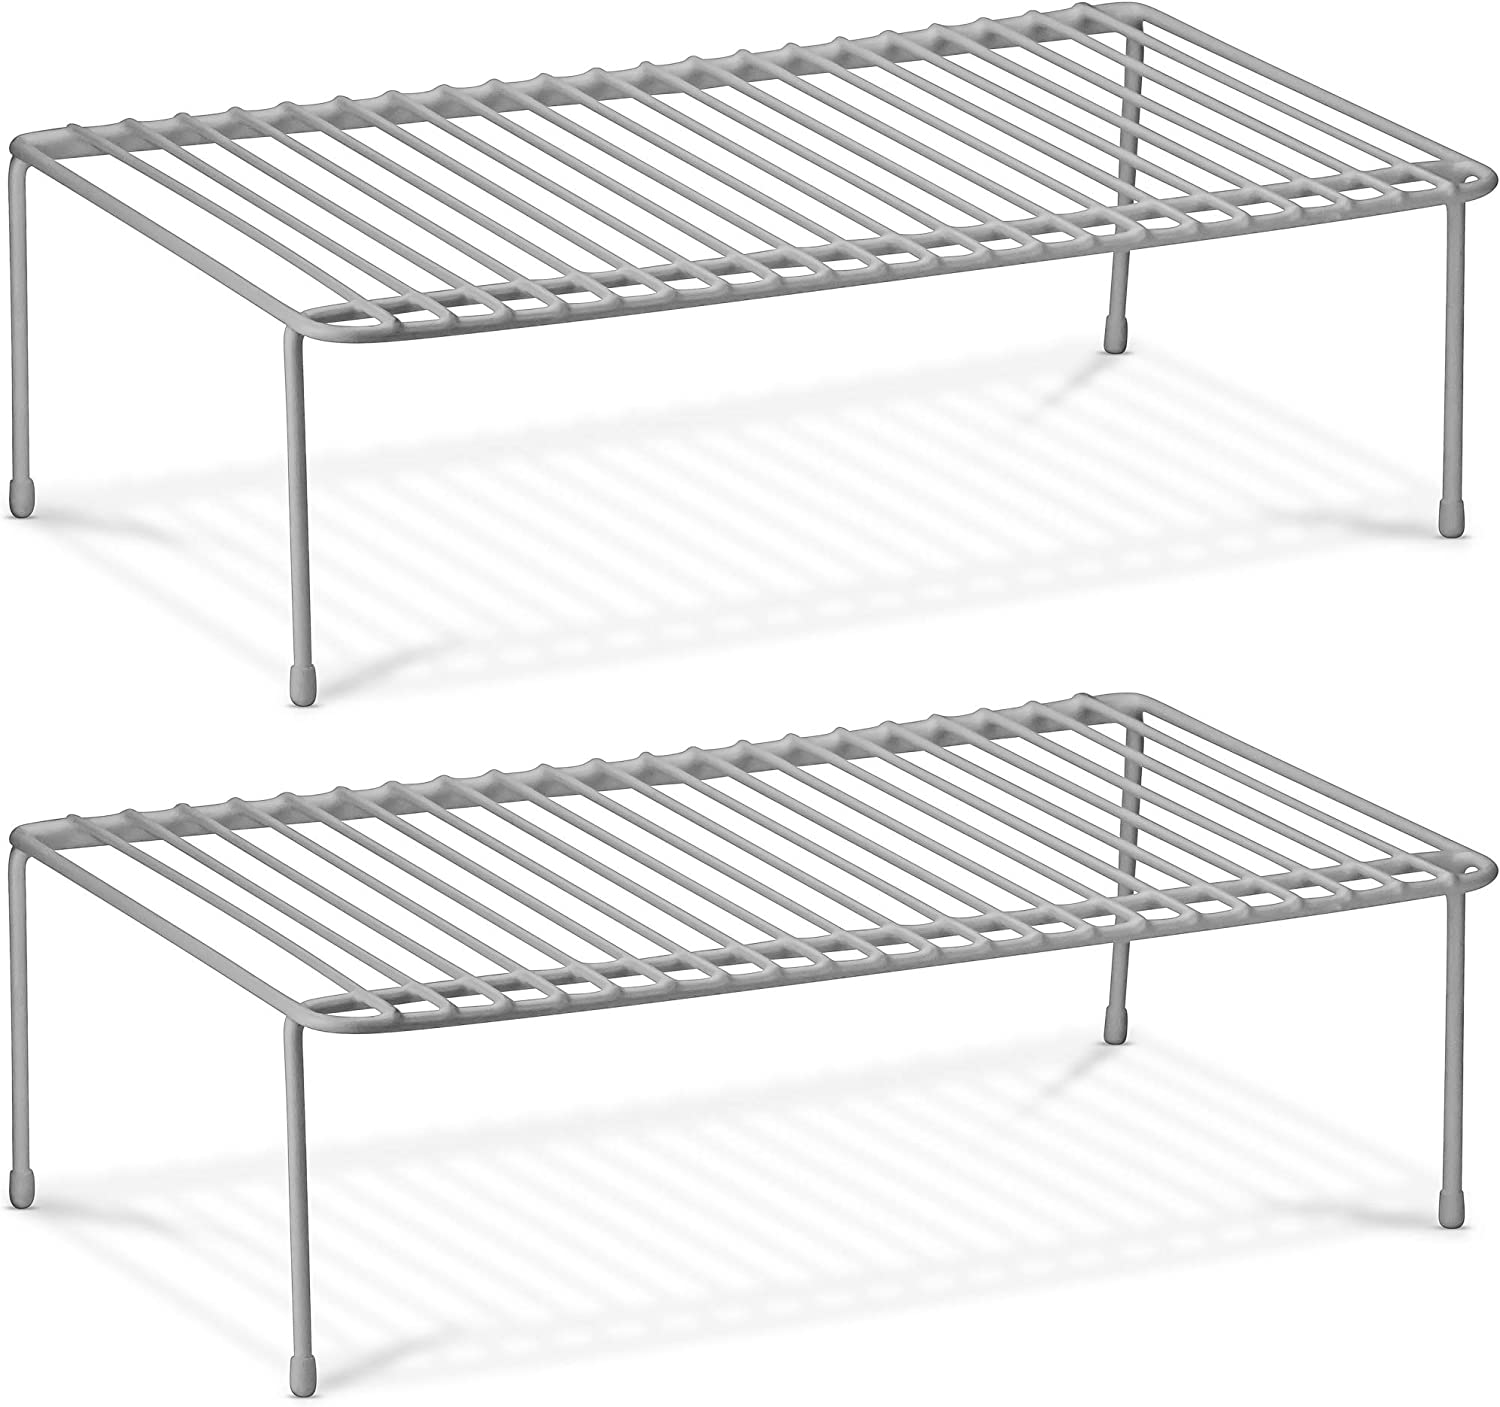 DecorRack 2 Counter and Cabinet Shelf Racks, Kitchen Storage Organizer, Steel Metal Wire Shelves for Pantry, Closet and Freezer 17.5 x 10 x 5.25 inch (2 Pack)